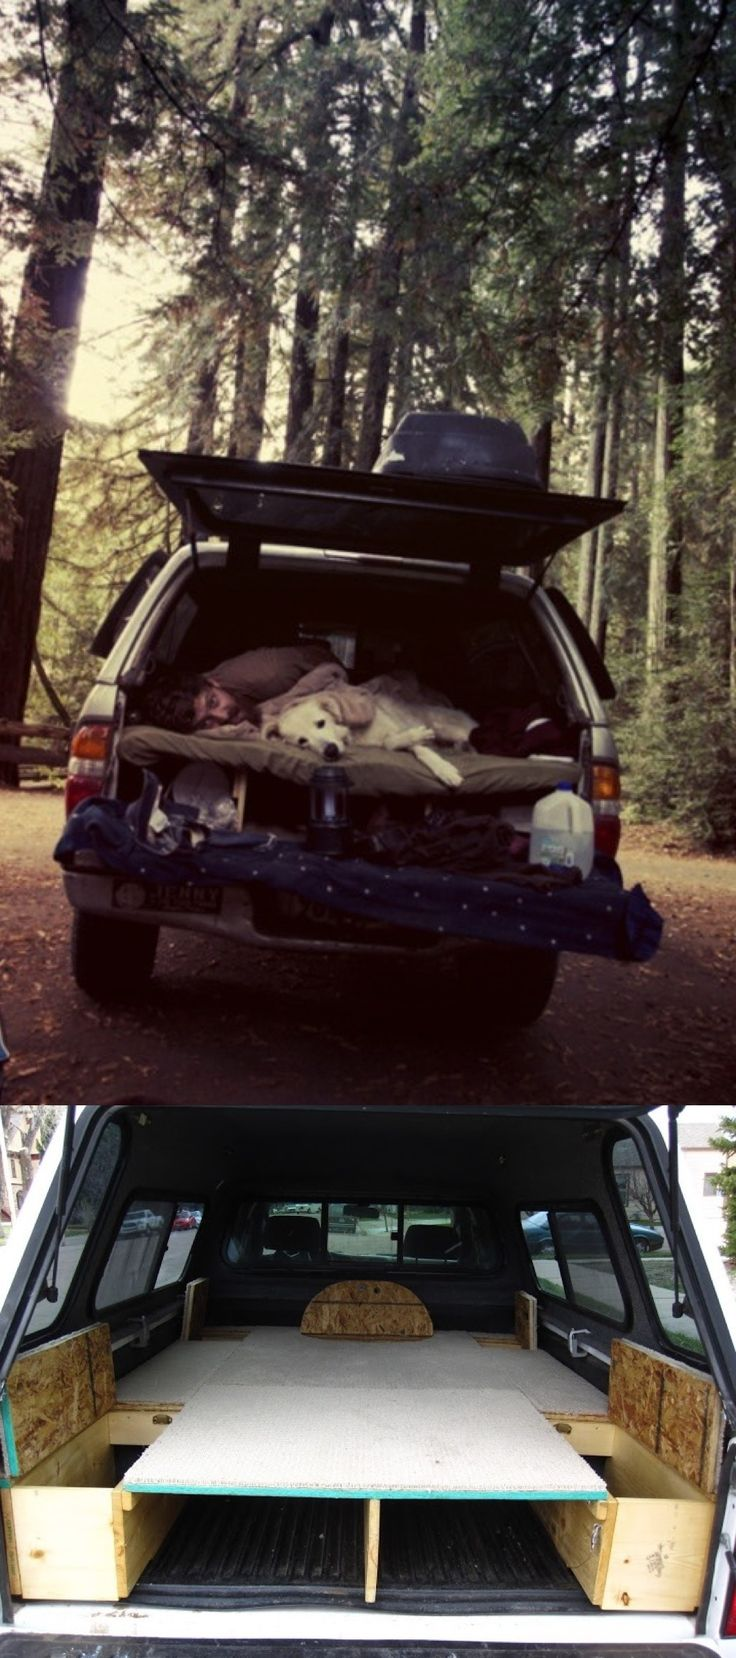 A man a dog a bed in back of the car and the beautiful outdoors what more does a girl need